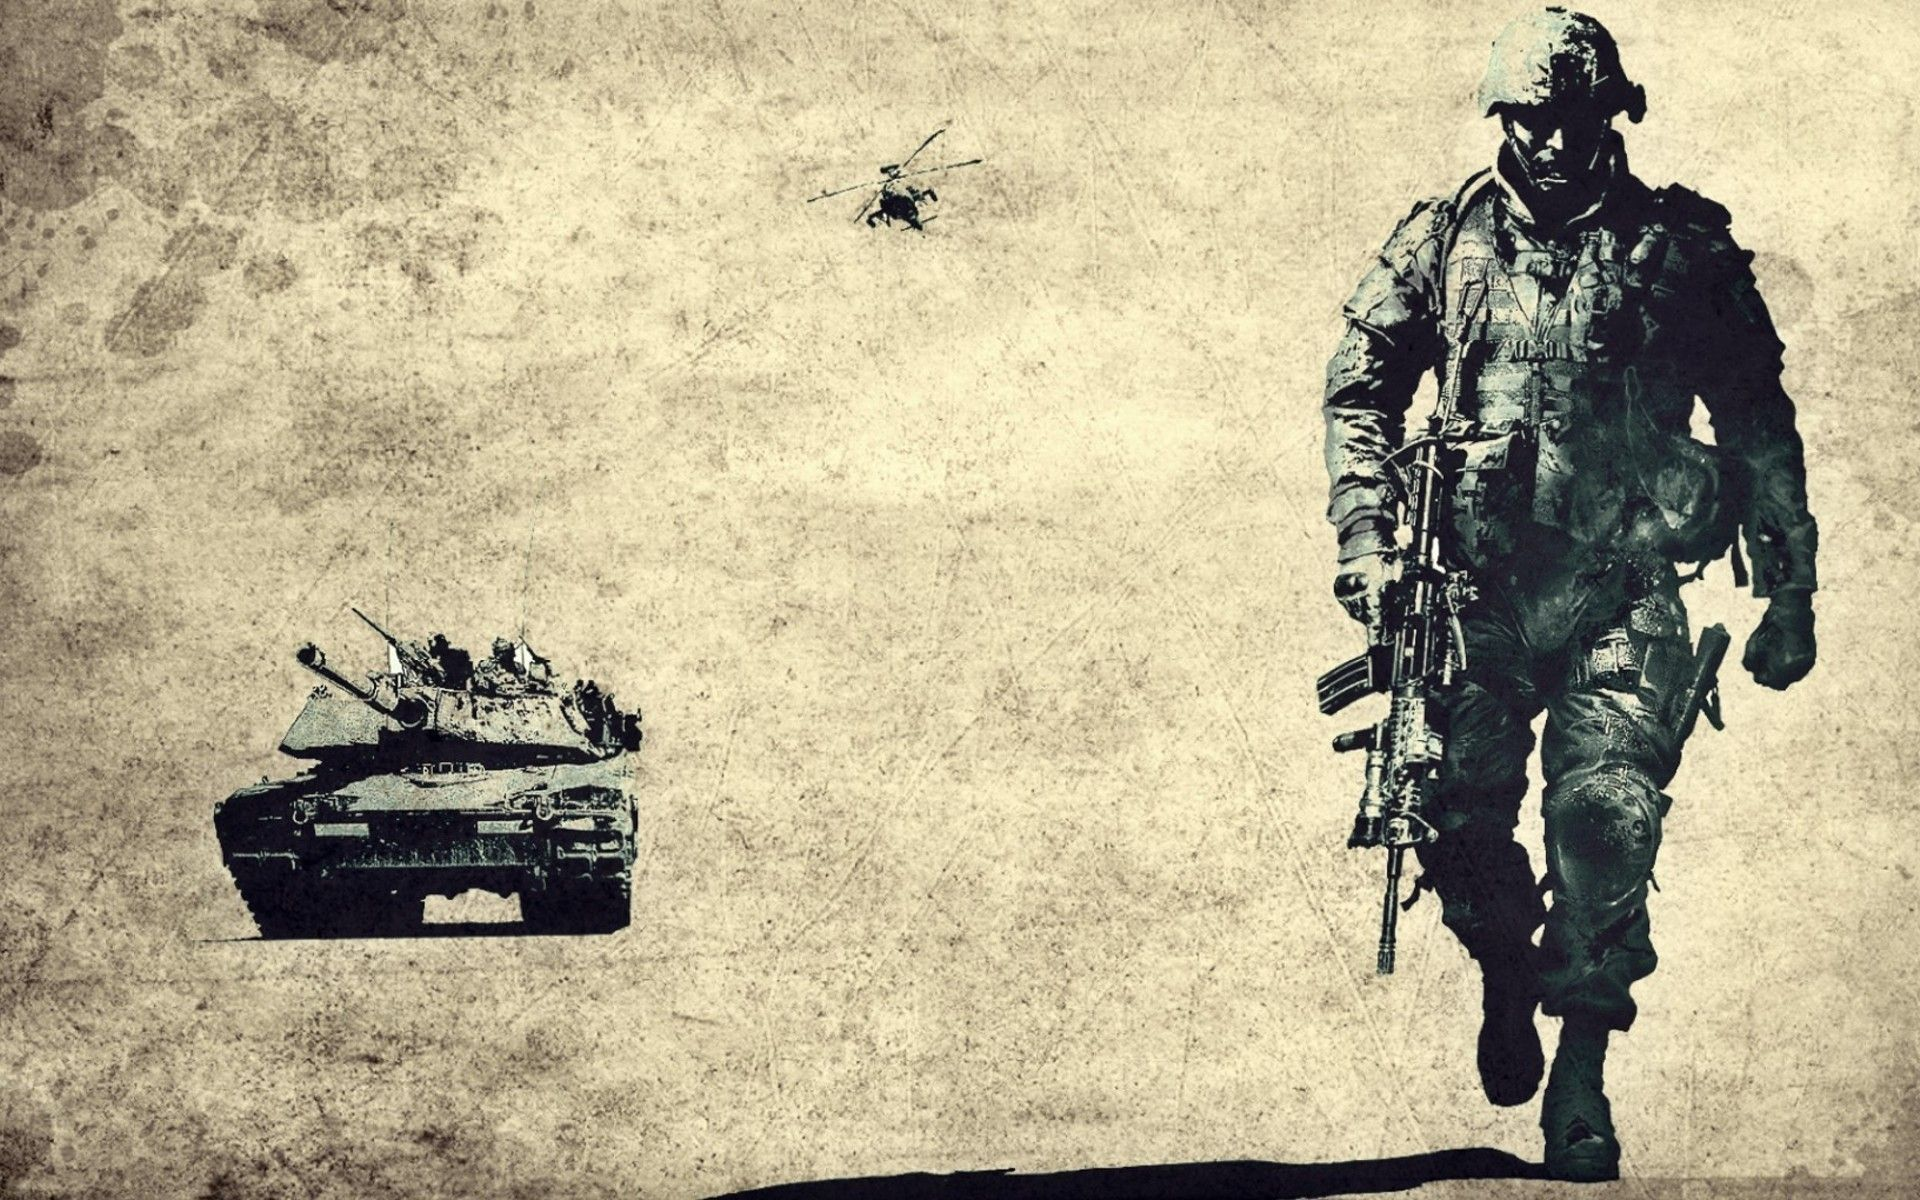 Army Wallpapers   Top Army Backgrounds   WallpaperAccess 1920x1200